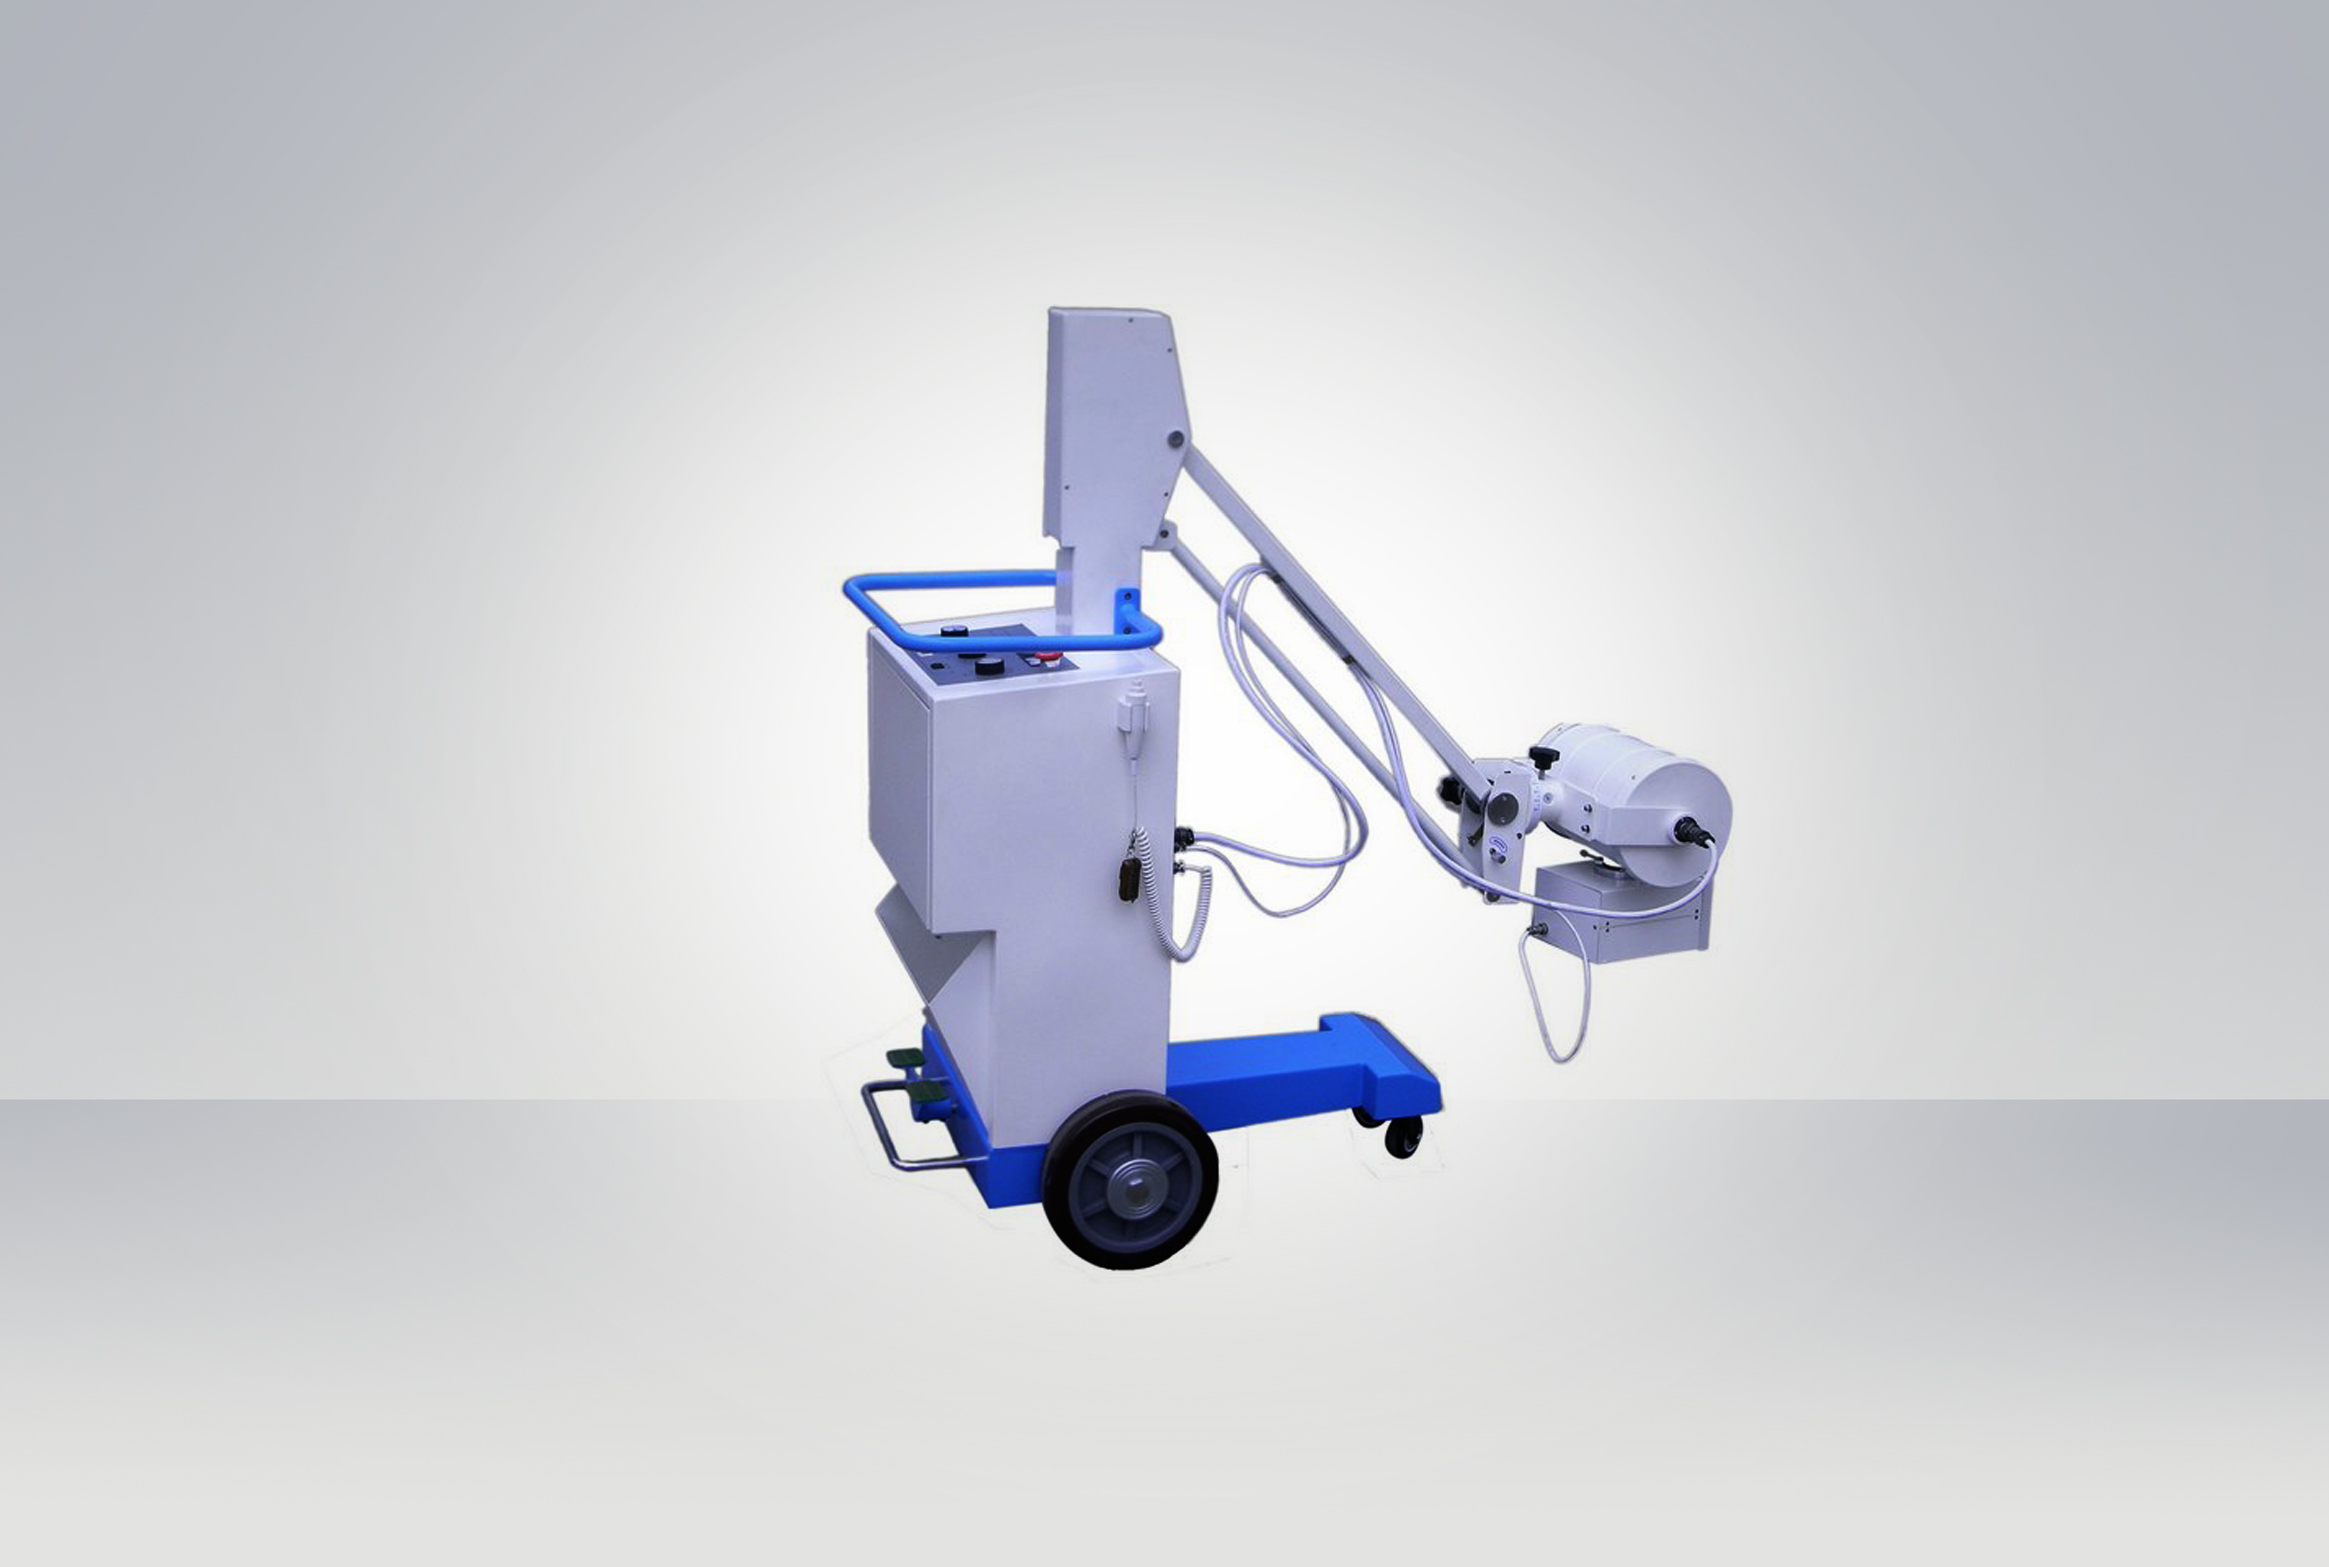 Mobile Medical Radiographic X-Ray Unit